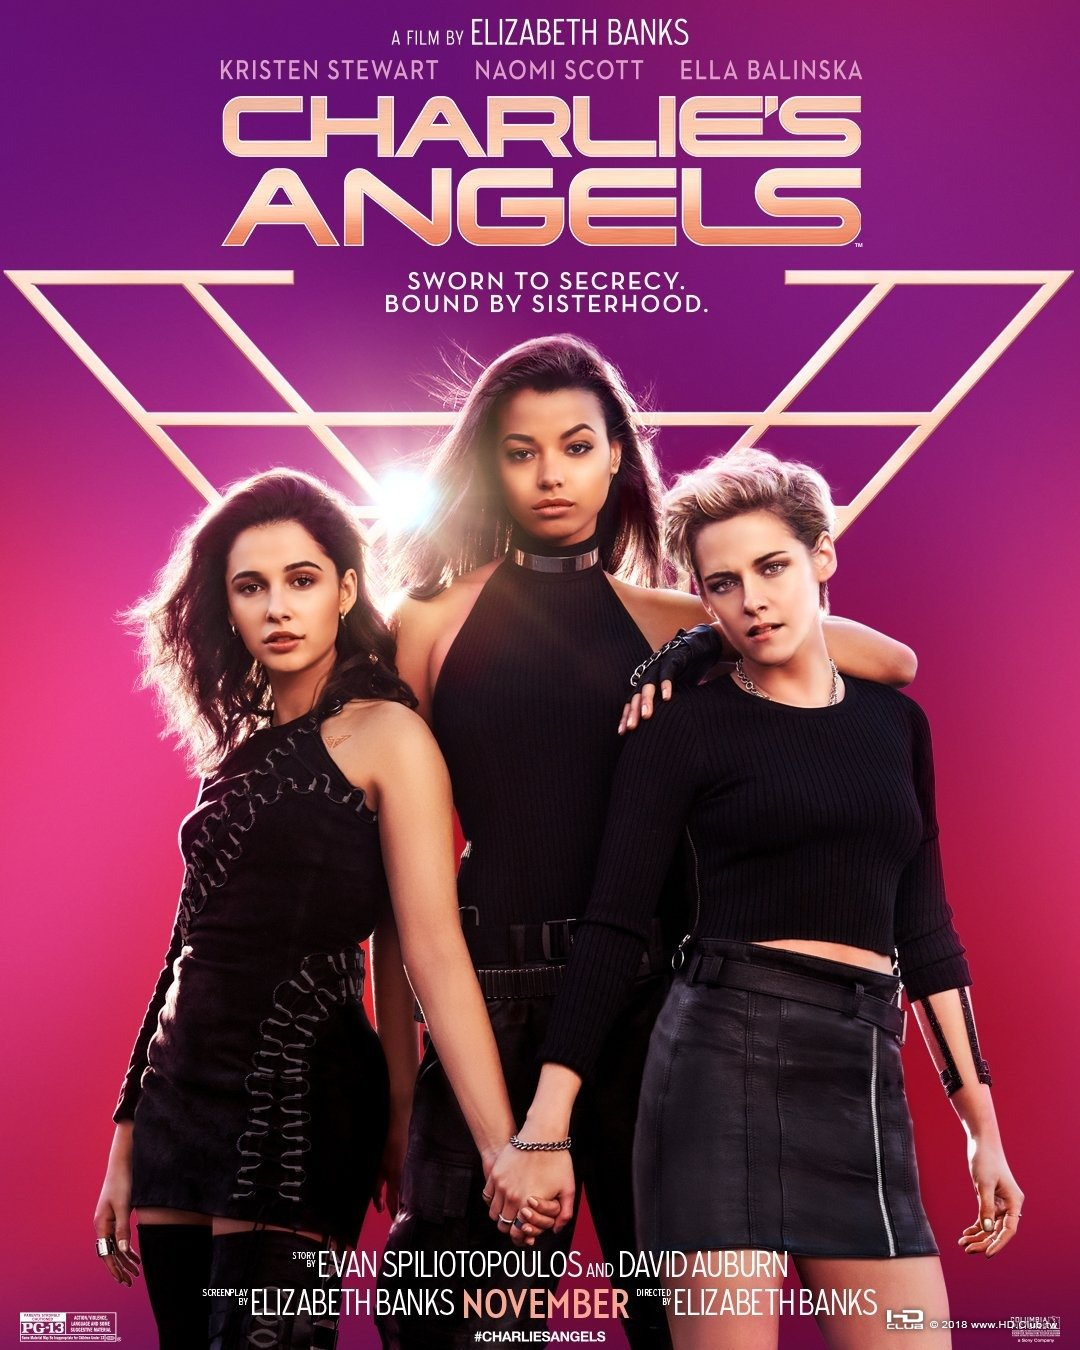 charlies_angels_ver5_xlg.jpg